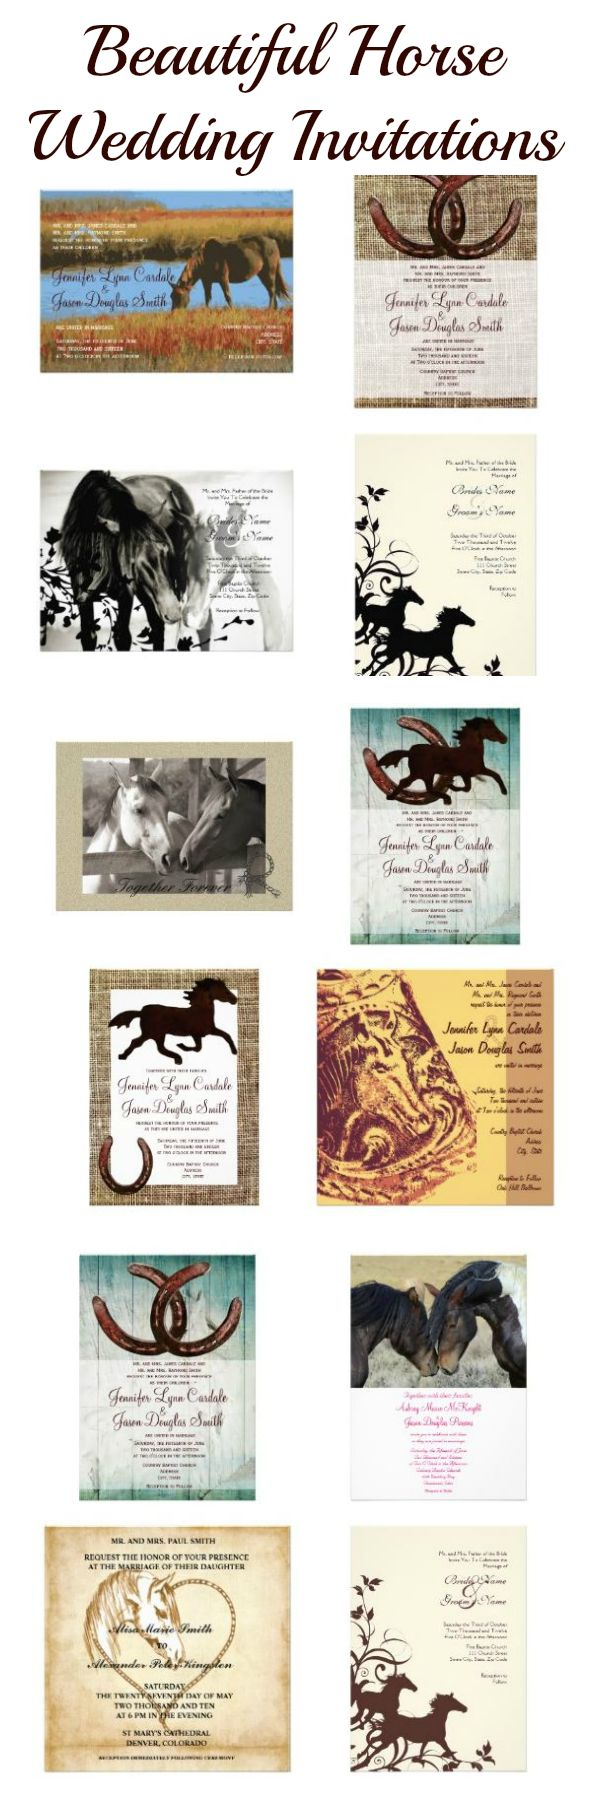 Western Wedding Invitations | Wedding Invitations | Pinterest ...